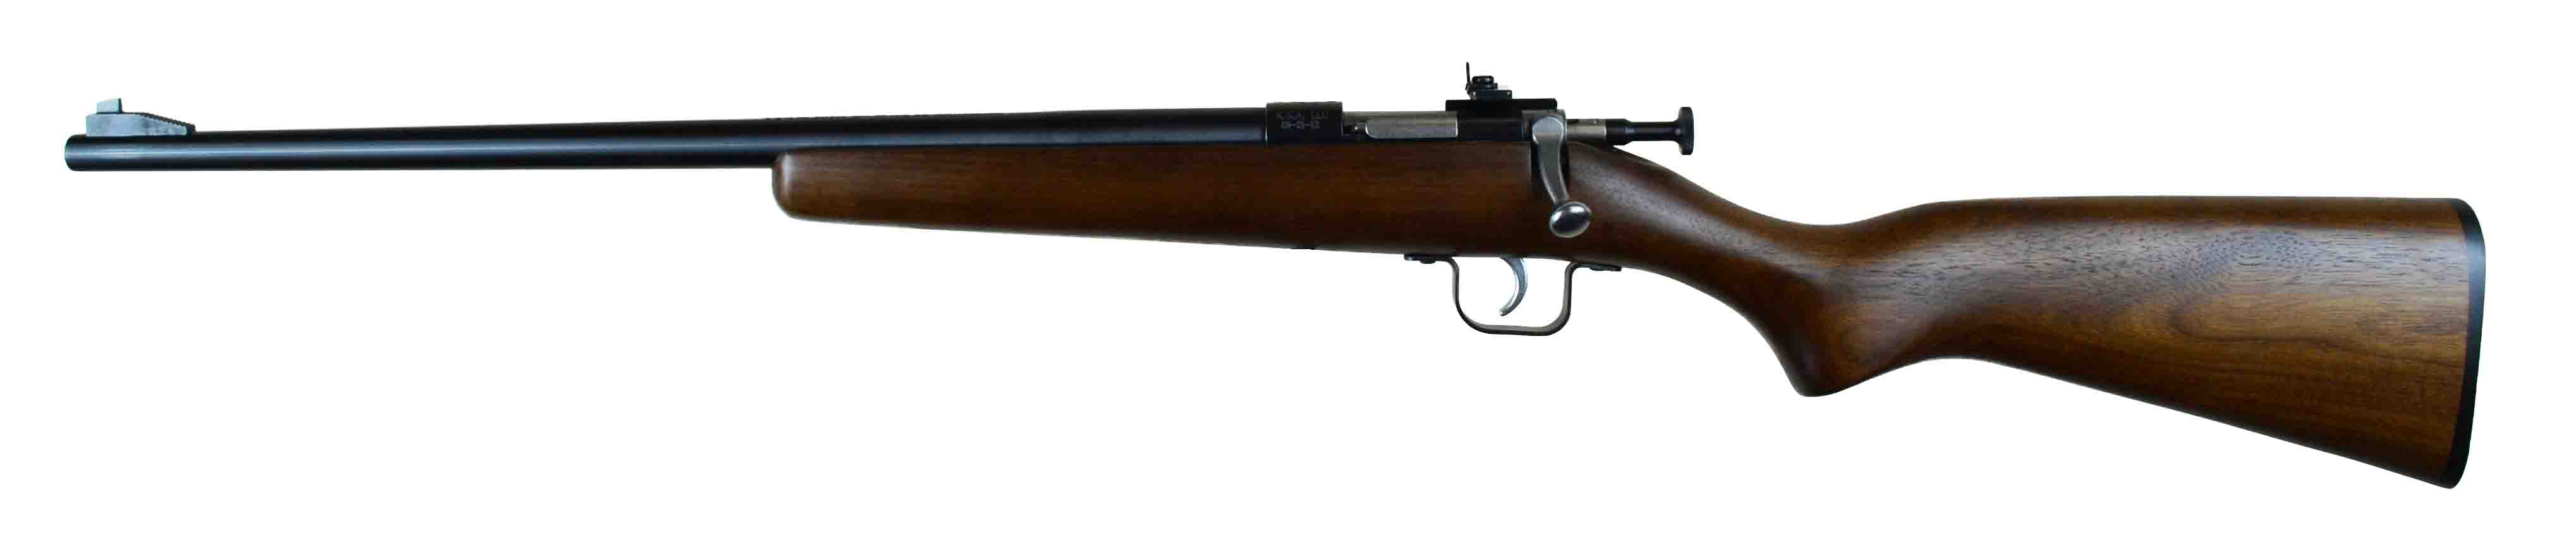 Keystone Sporting Arms CHIPMUNK 22 LR